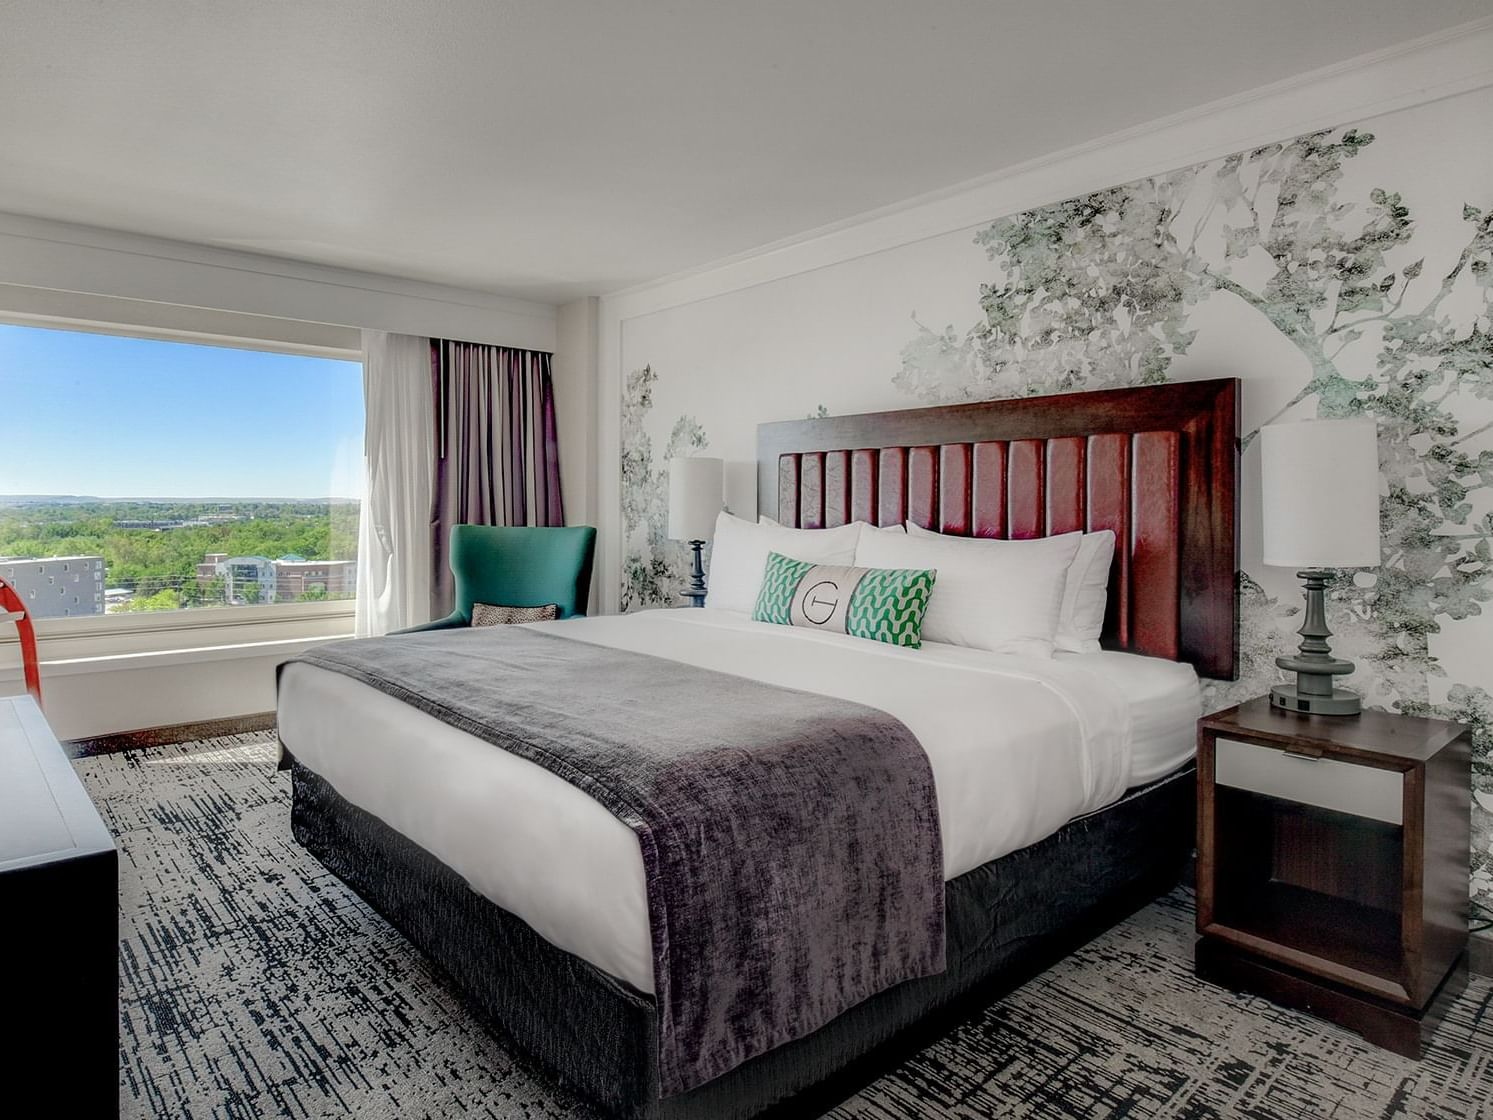 suite at grove hotel in boise